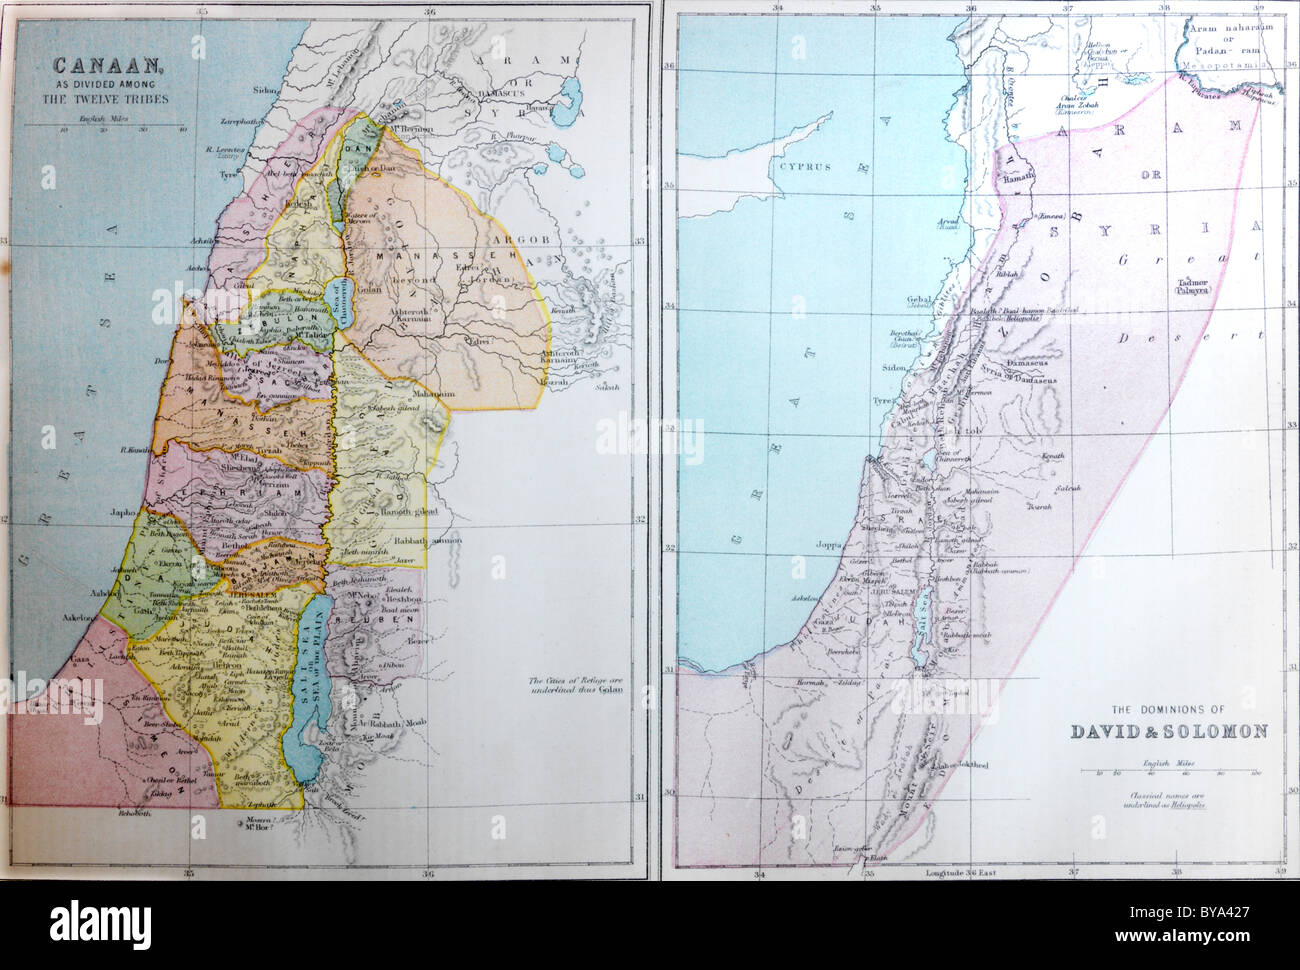 Two Maps In A Bible One On The Canaan As Dividing Among The Twelve     Two Maps In A Bible One On The Canaan As Dividing Among The Twelve Apostles  The Other On The Dominions Of David And Soloman